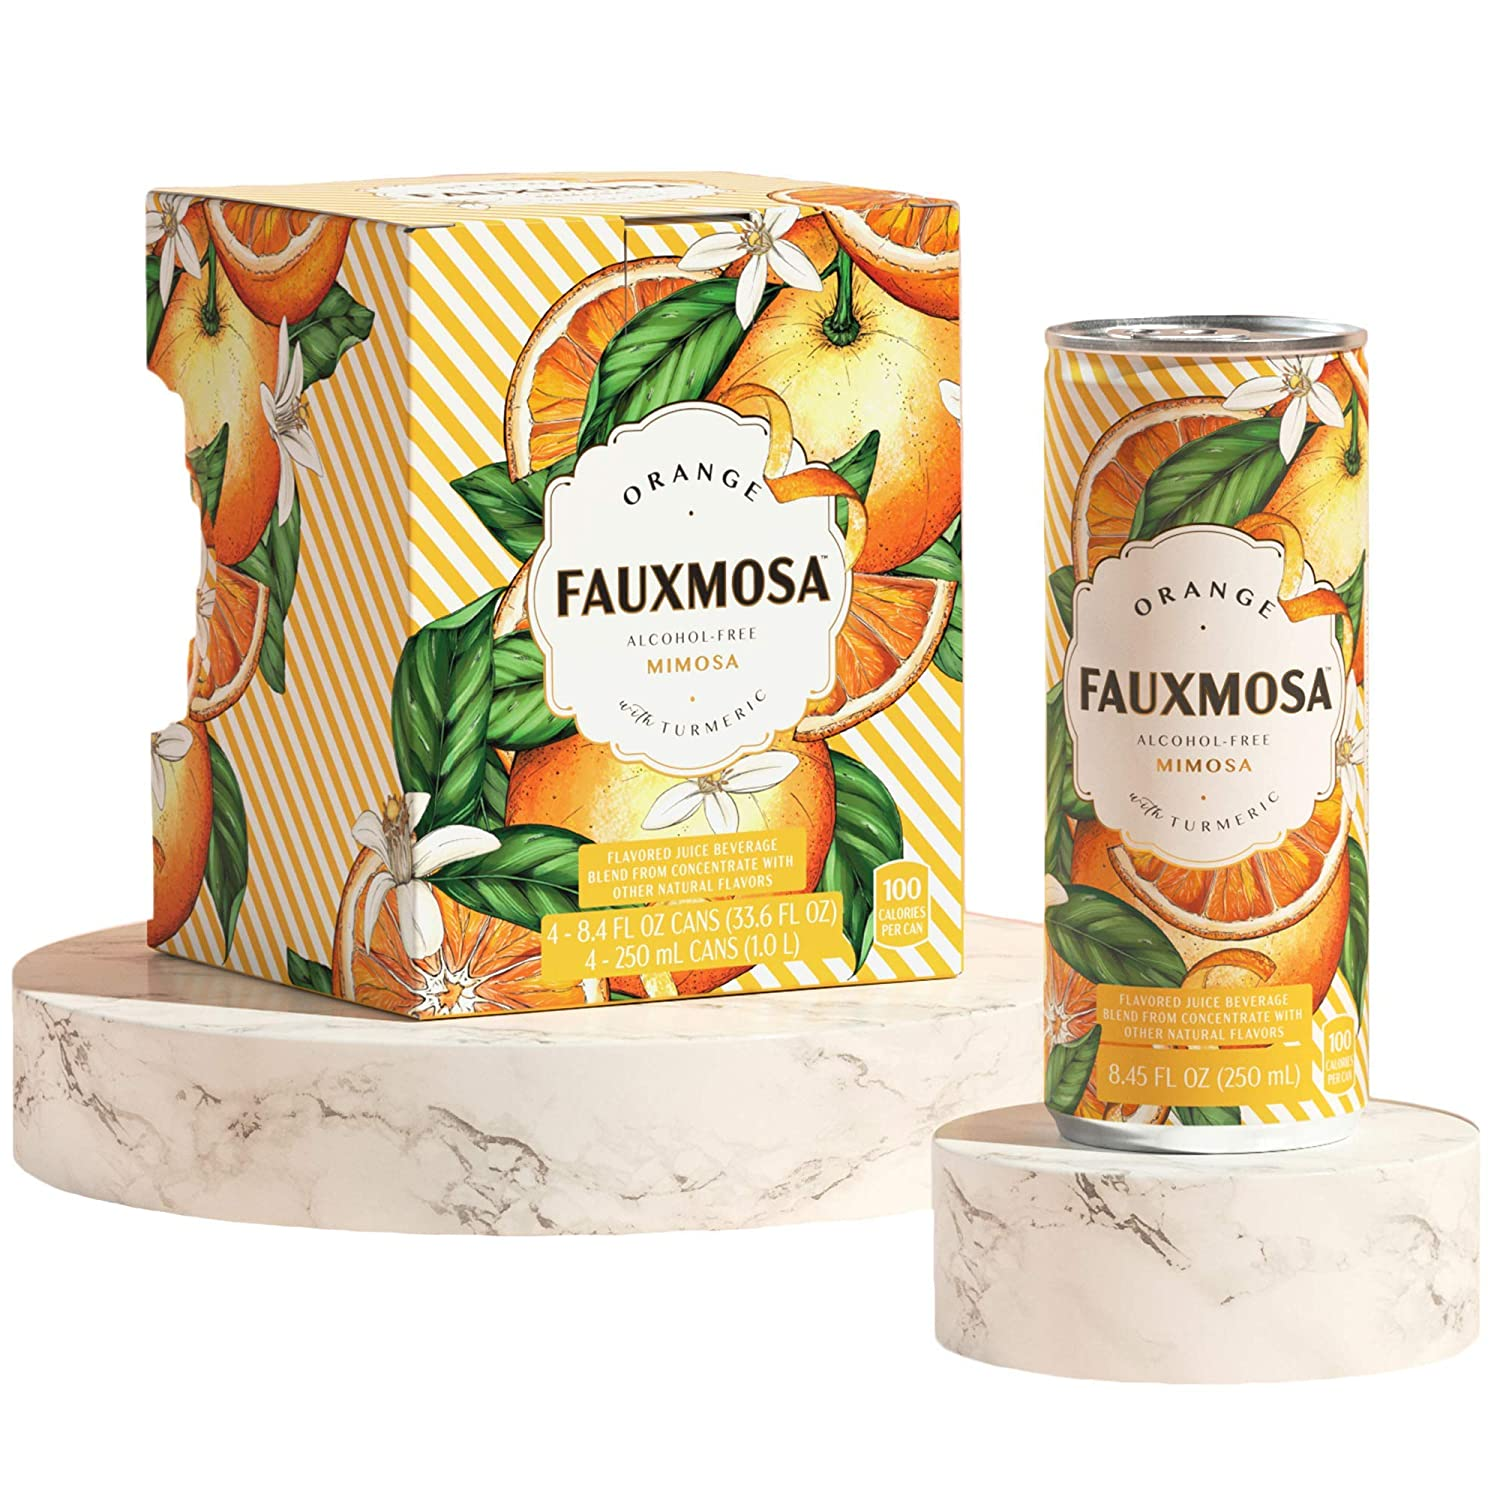 FAUXMOSA Alcohol-Free Mimosas   Best Premium Non-Alcoholic Cocktail, Made with California Grapes, Perfect Champagne Alternative, Non-GMO and Gluten-Free, 8.45 FL OZ Cans (4-Pack) Orange with Turmeric